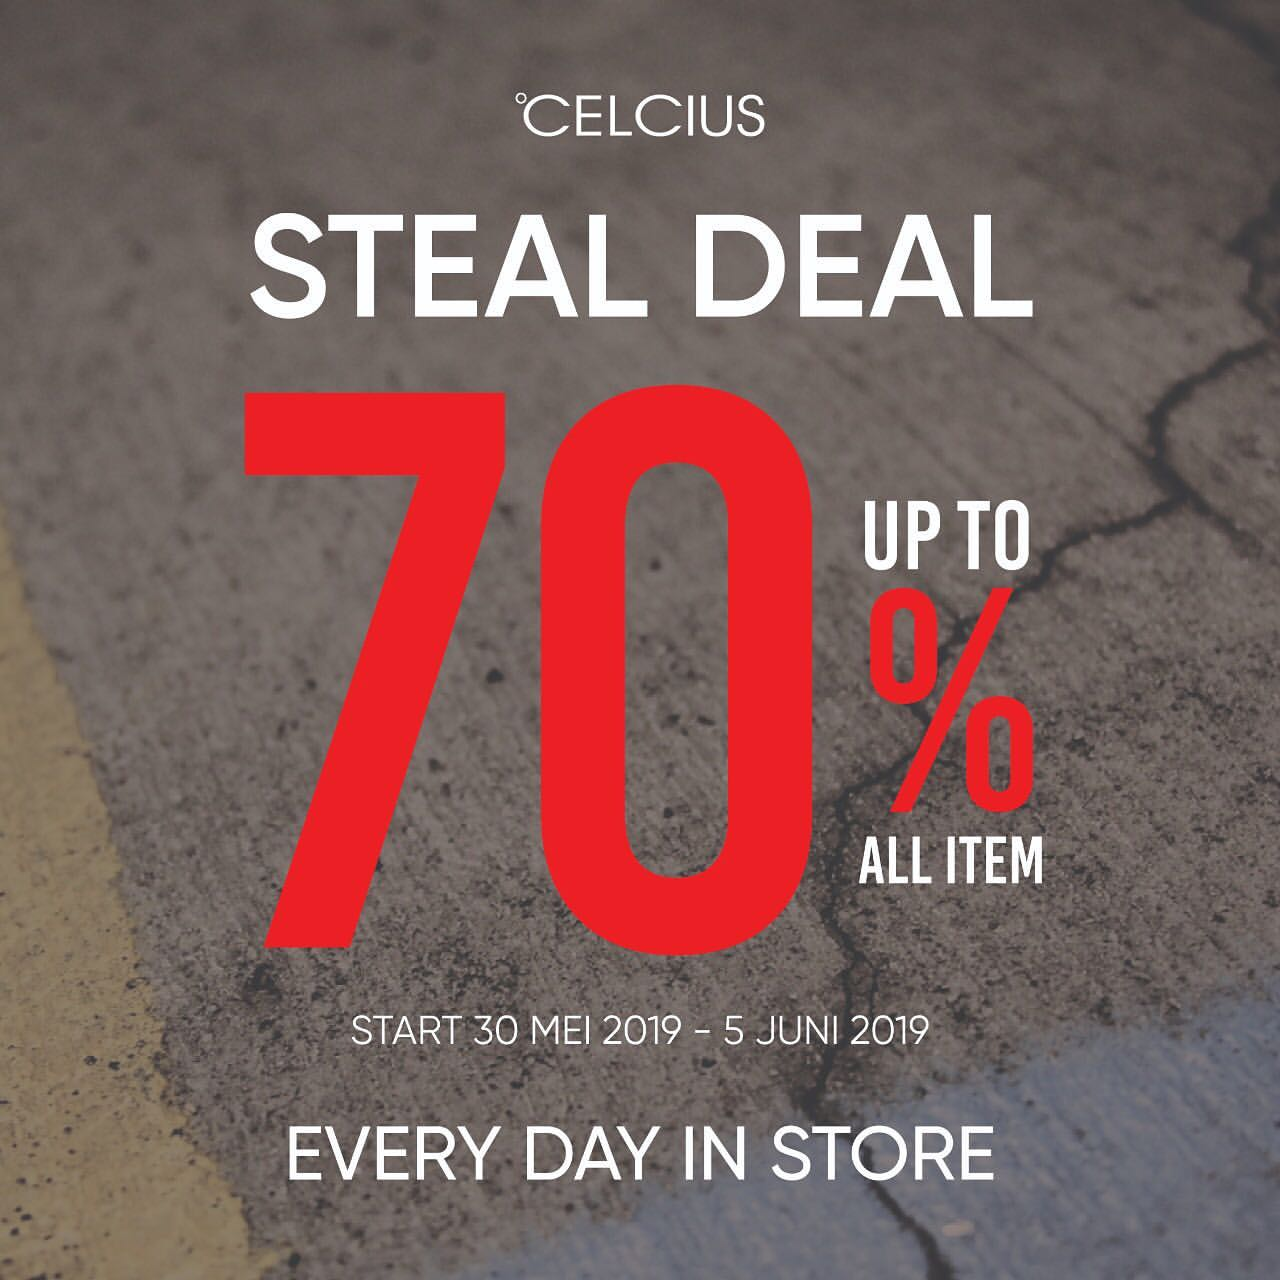 Celcius Promo Discount Up To 70% All Item